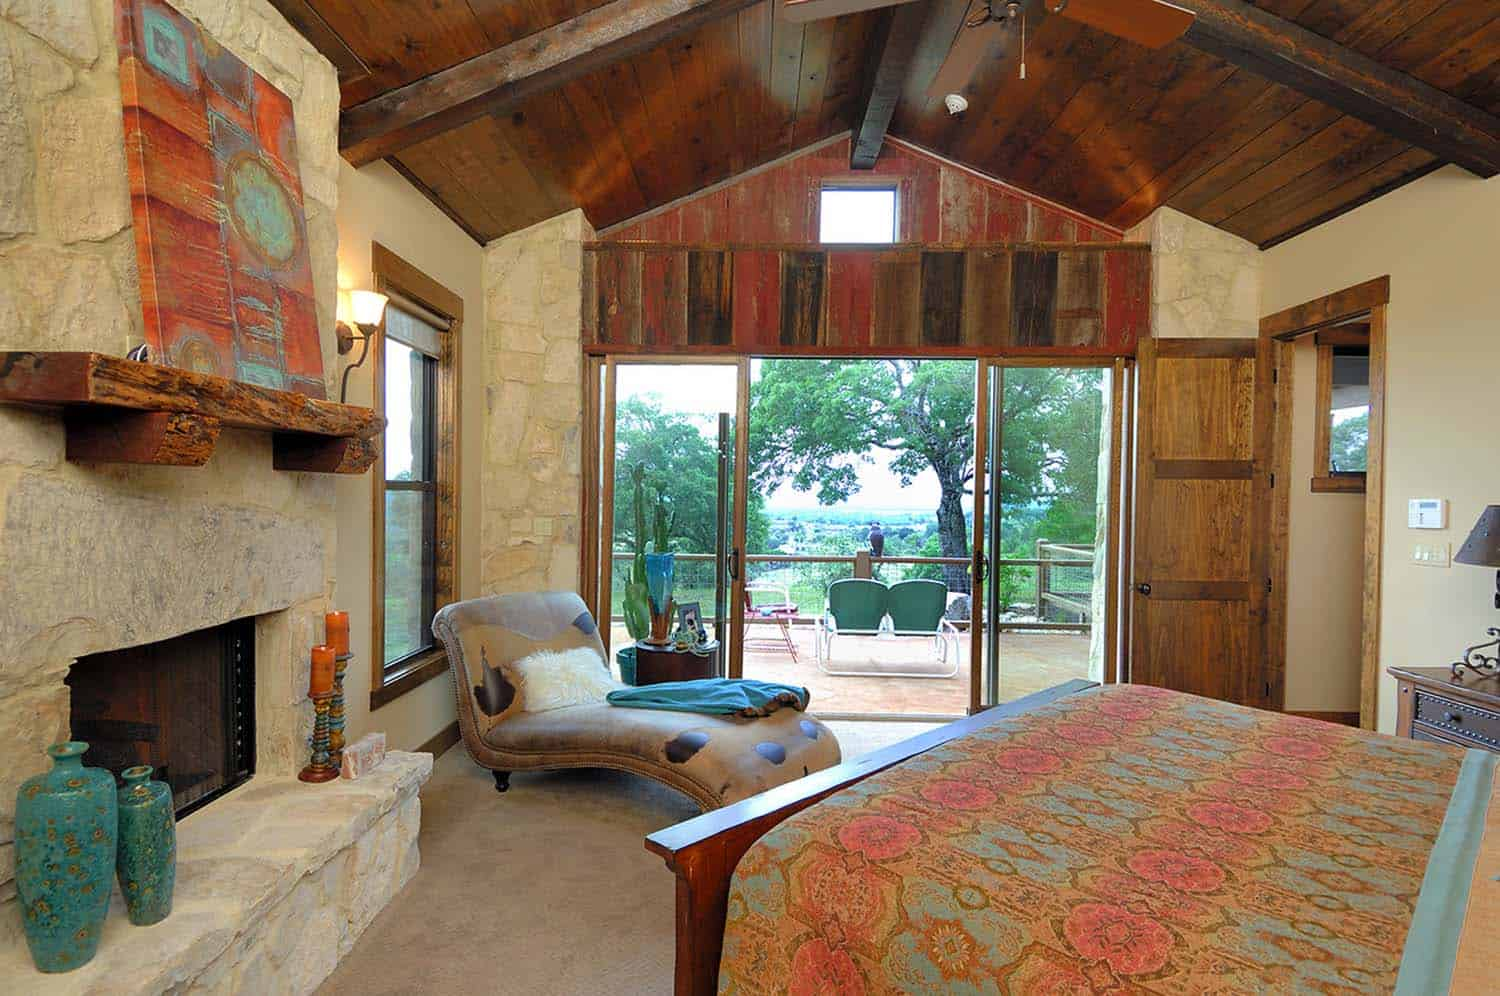 Ranch House-Barn-Burleson Design Group-11-1 Kindesign